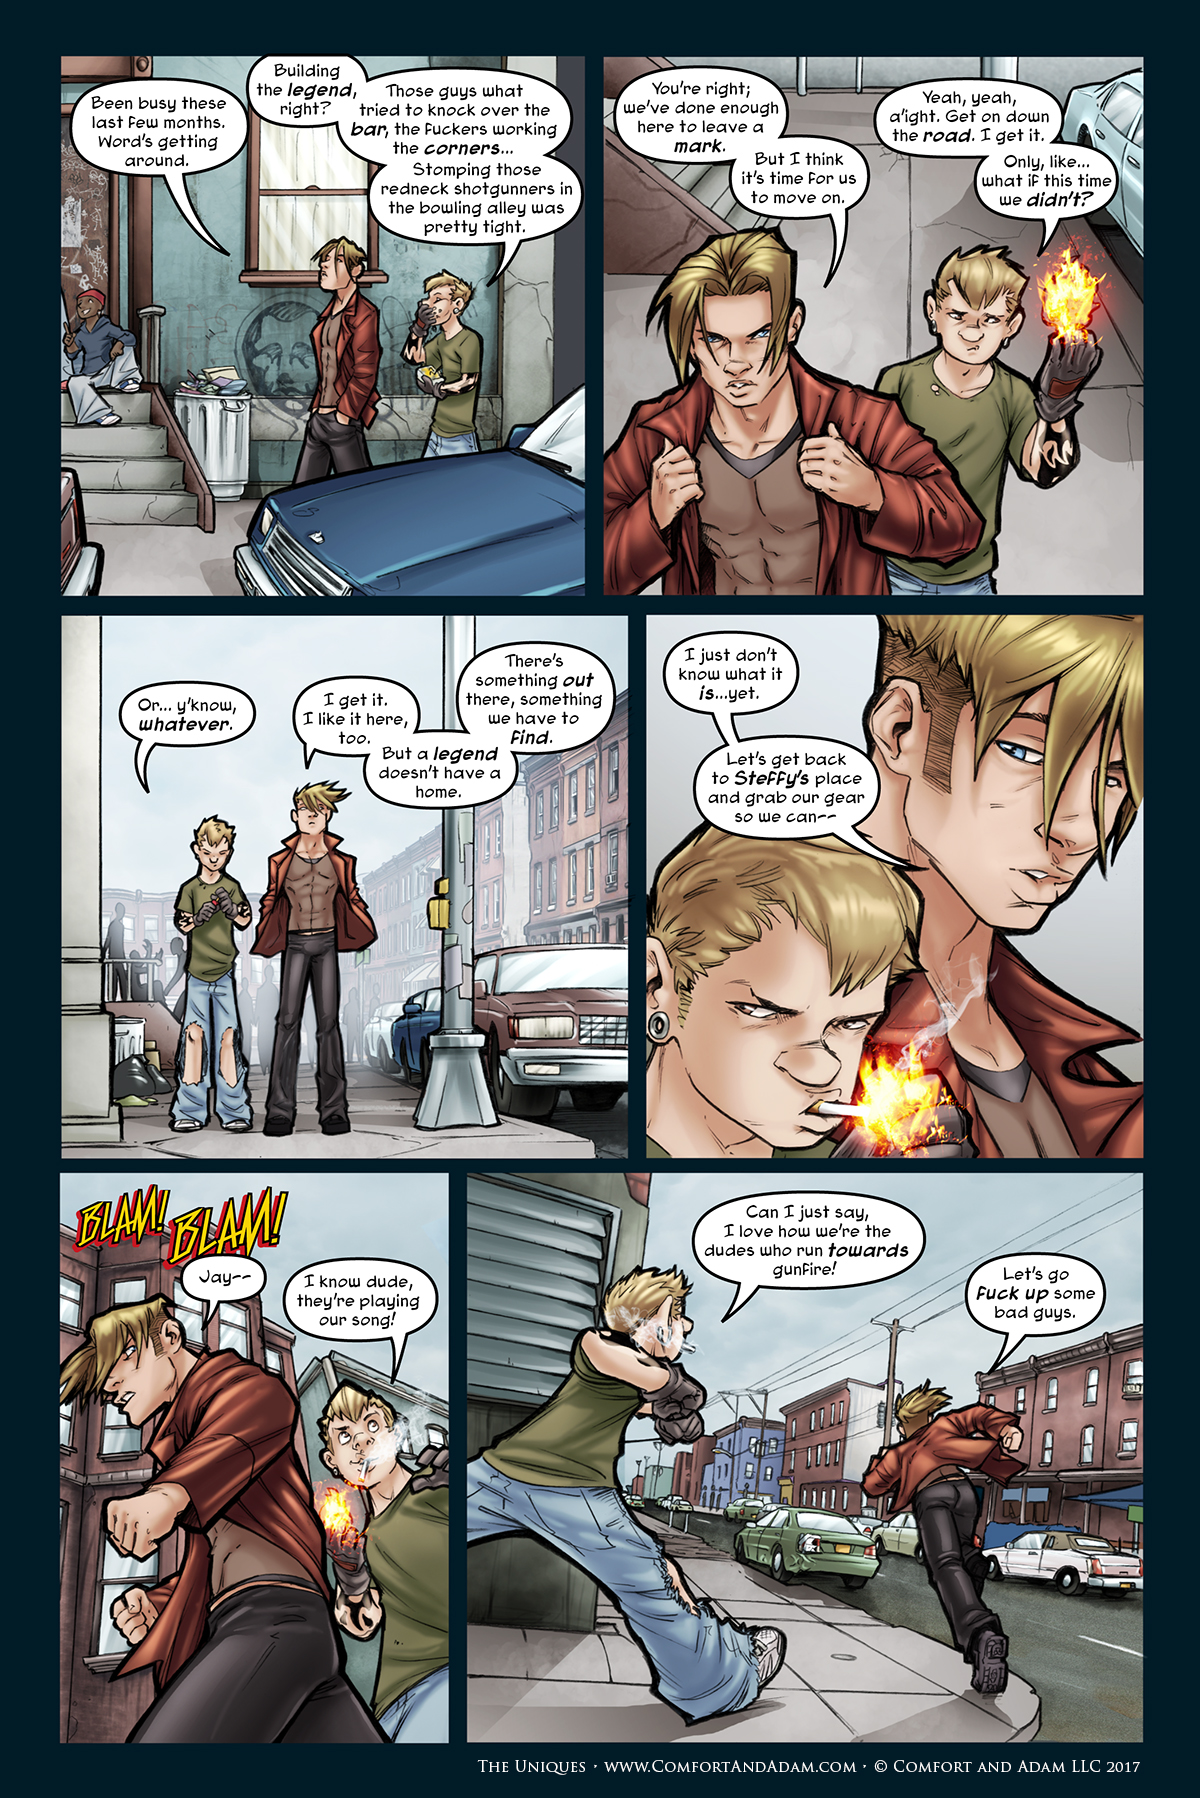 The Uniques #2, pg. 15: Sweet Street Music